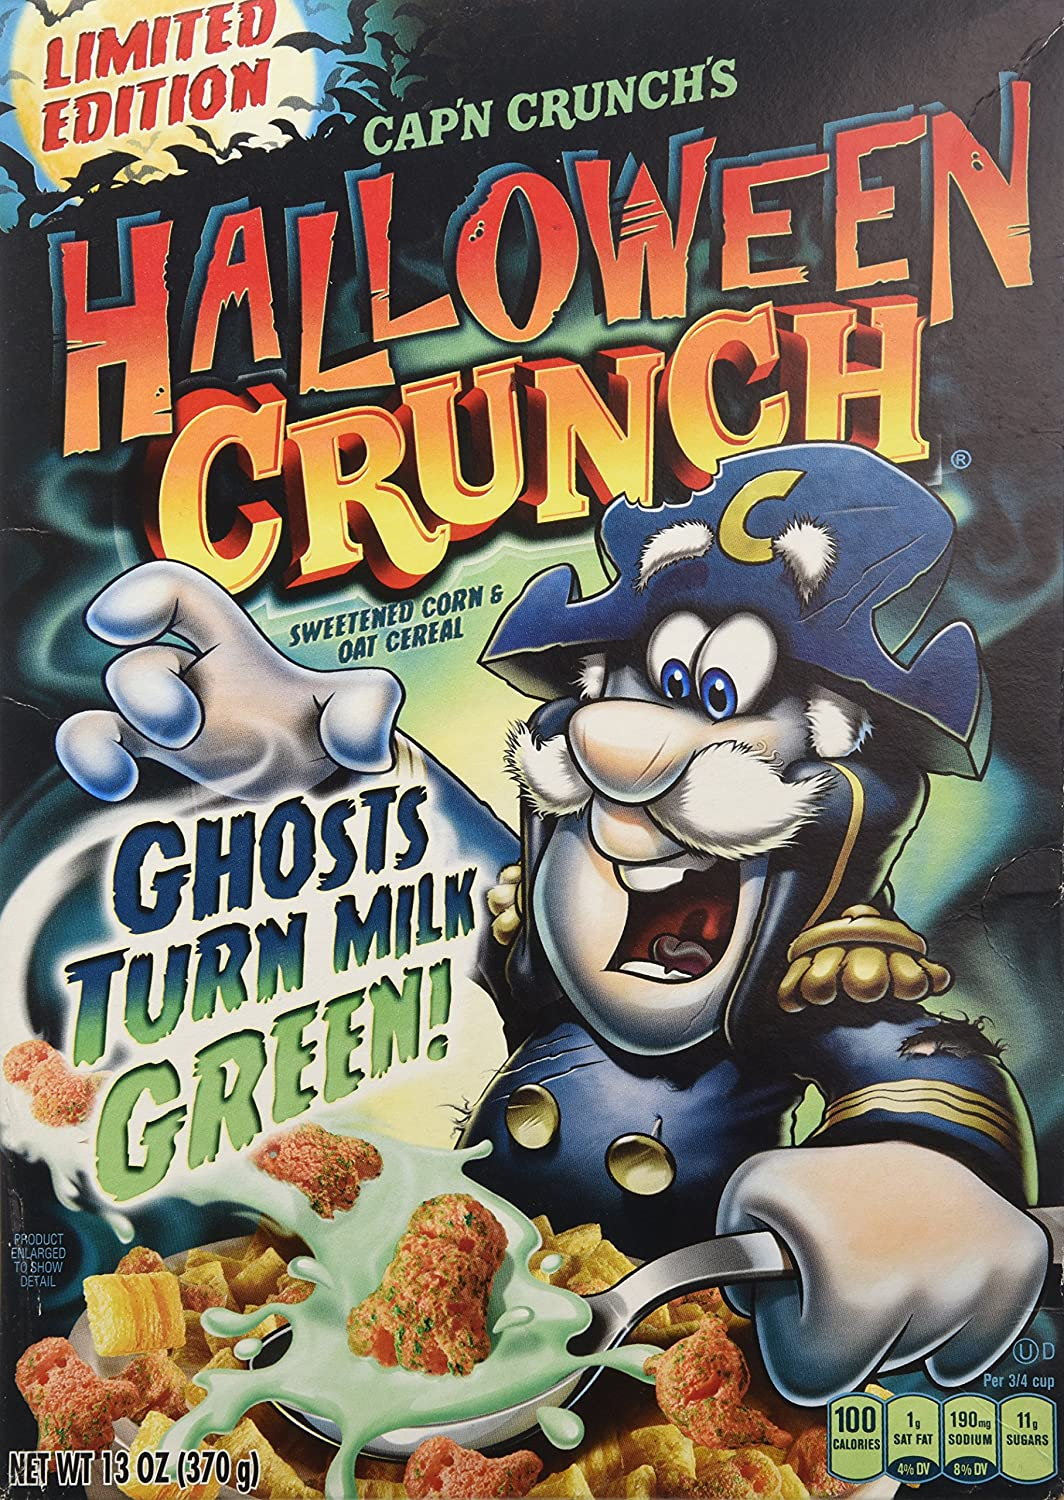 Amazon.com: Cap'n Crunch's Halloween Crunch Ghosts Turn Milk GREEN ...